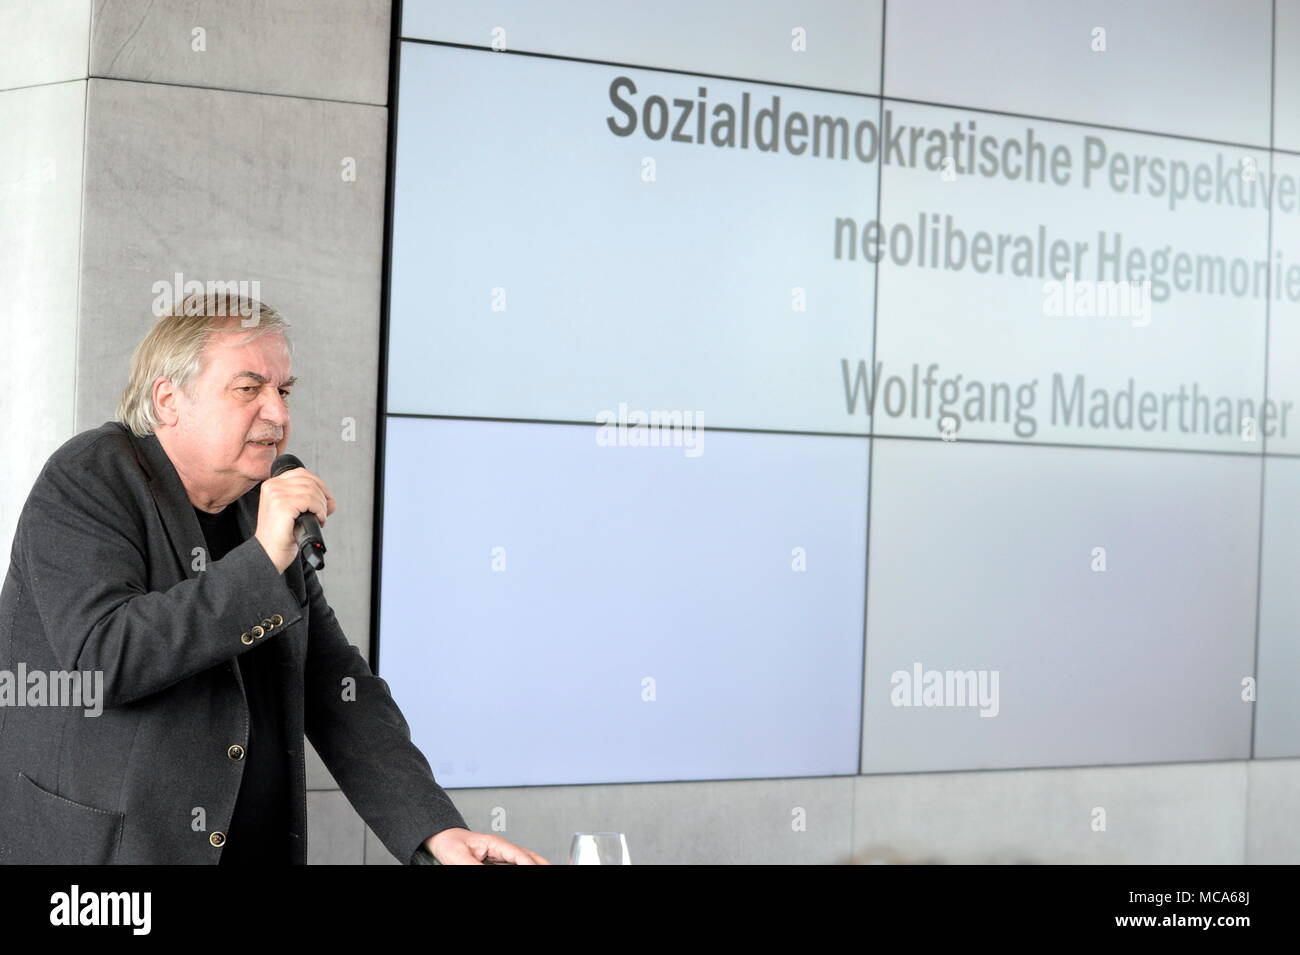 Vienna, Austria. April 14, 2018. In the course of the participation process for the new party program of the Social Democratic Party of Austria took place on Saturday, April 14, 2018, the first SPÖ  -member councils instead. There, 60 members and ten guest members discussed with SPÖ politicians and experts. Image shows historian, general manager of the of the Austrian State Archives Wolfgang Maderthaner. Credit: Franz Perc / Alamy Live News - Stock Image